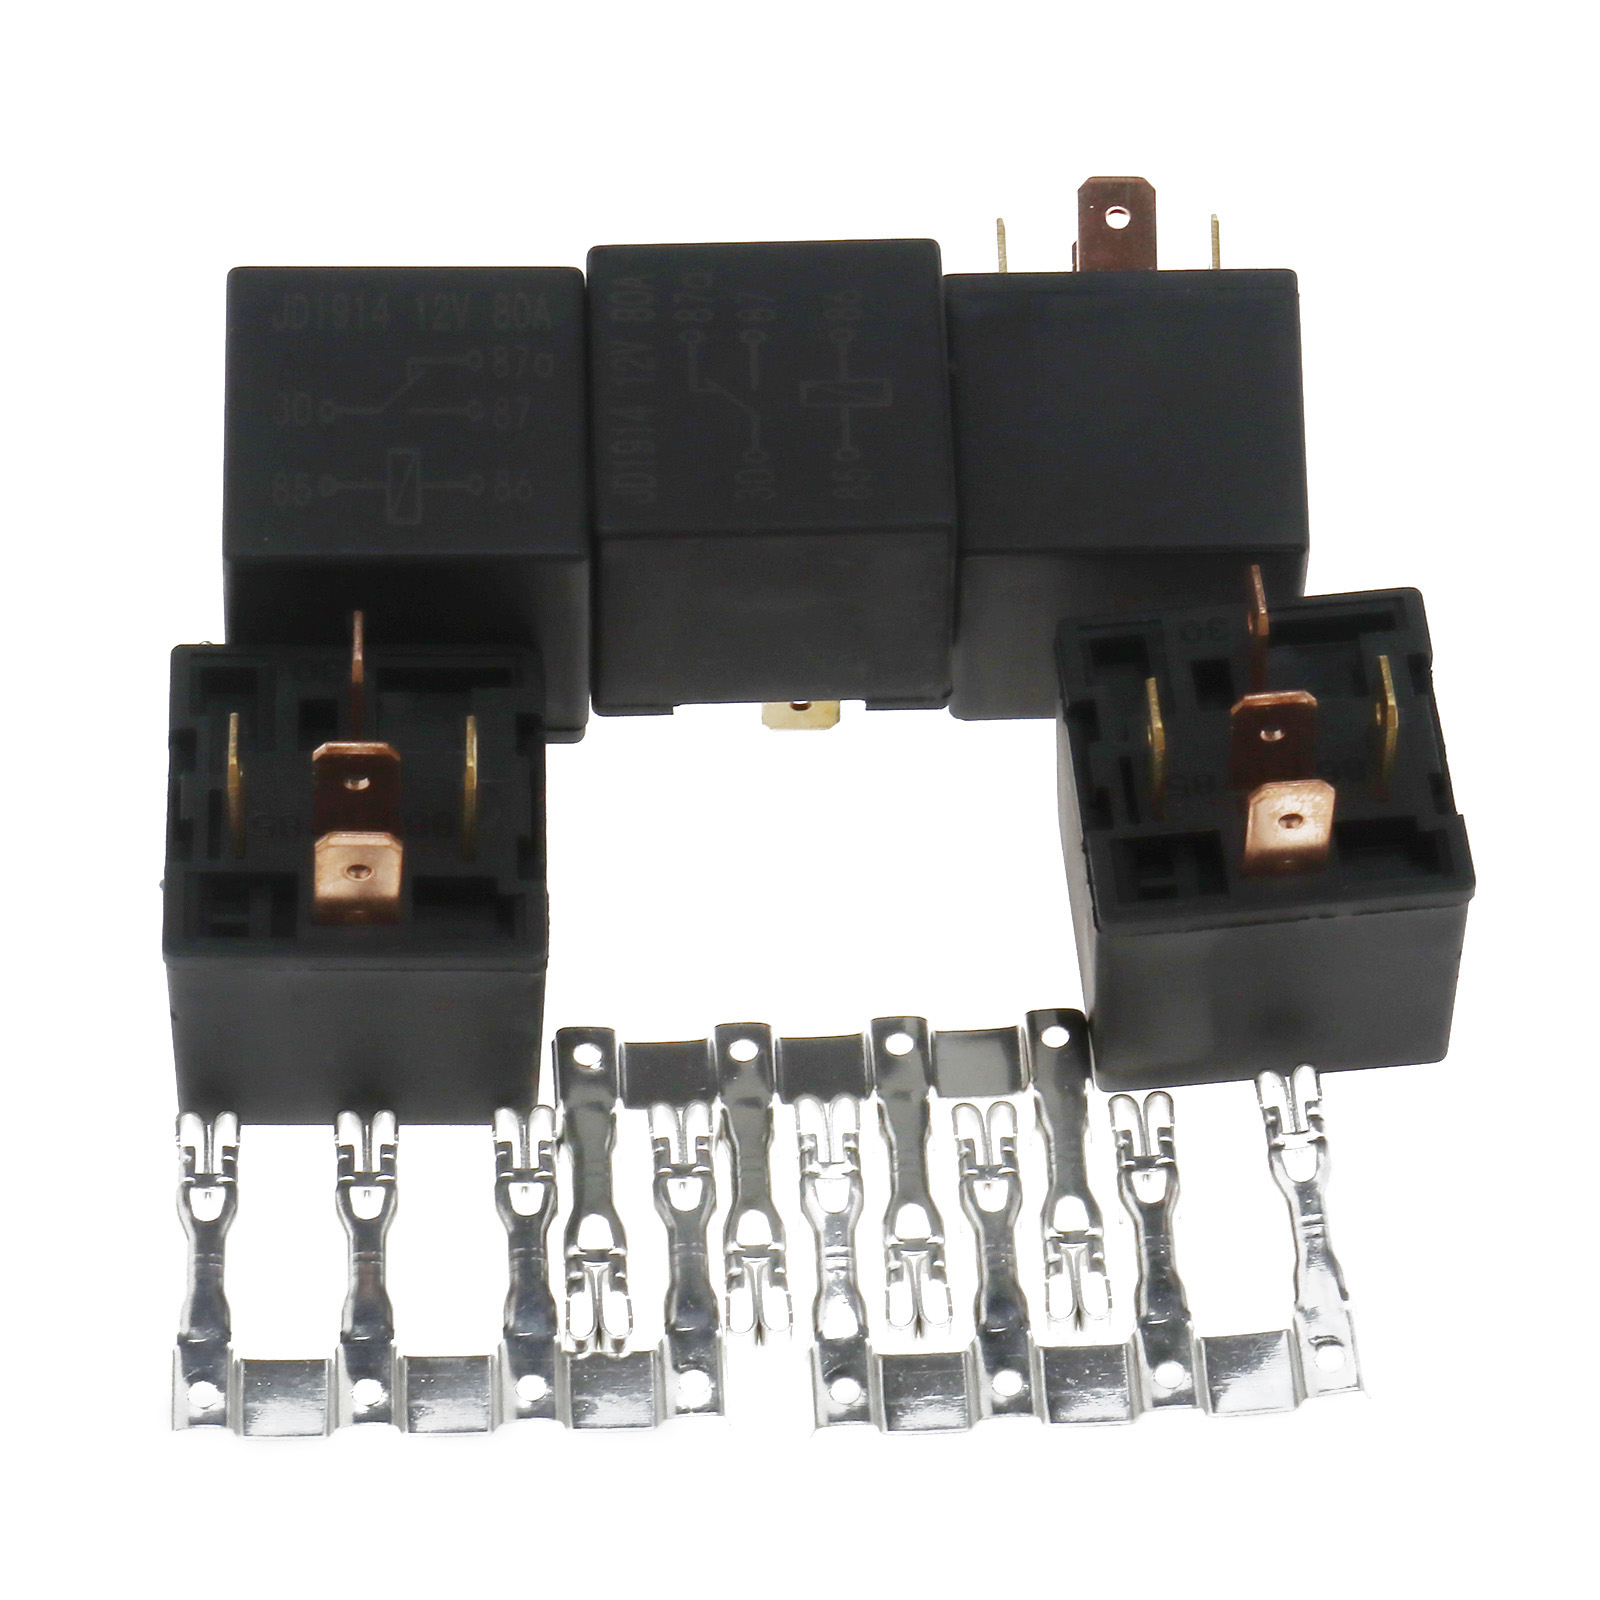 auto 6 relay block holder 5 road electrical fuse box. Black Bedroom Furniture Sets. Home Design Ideas